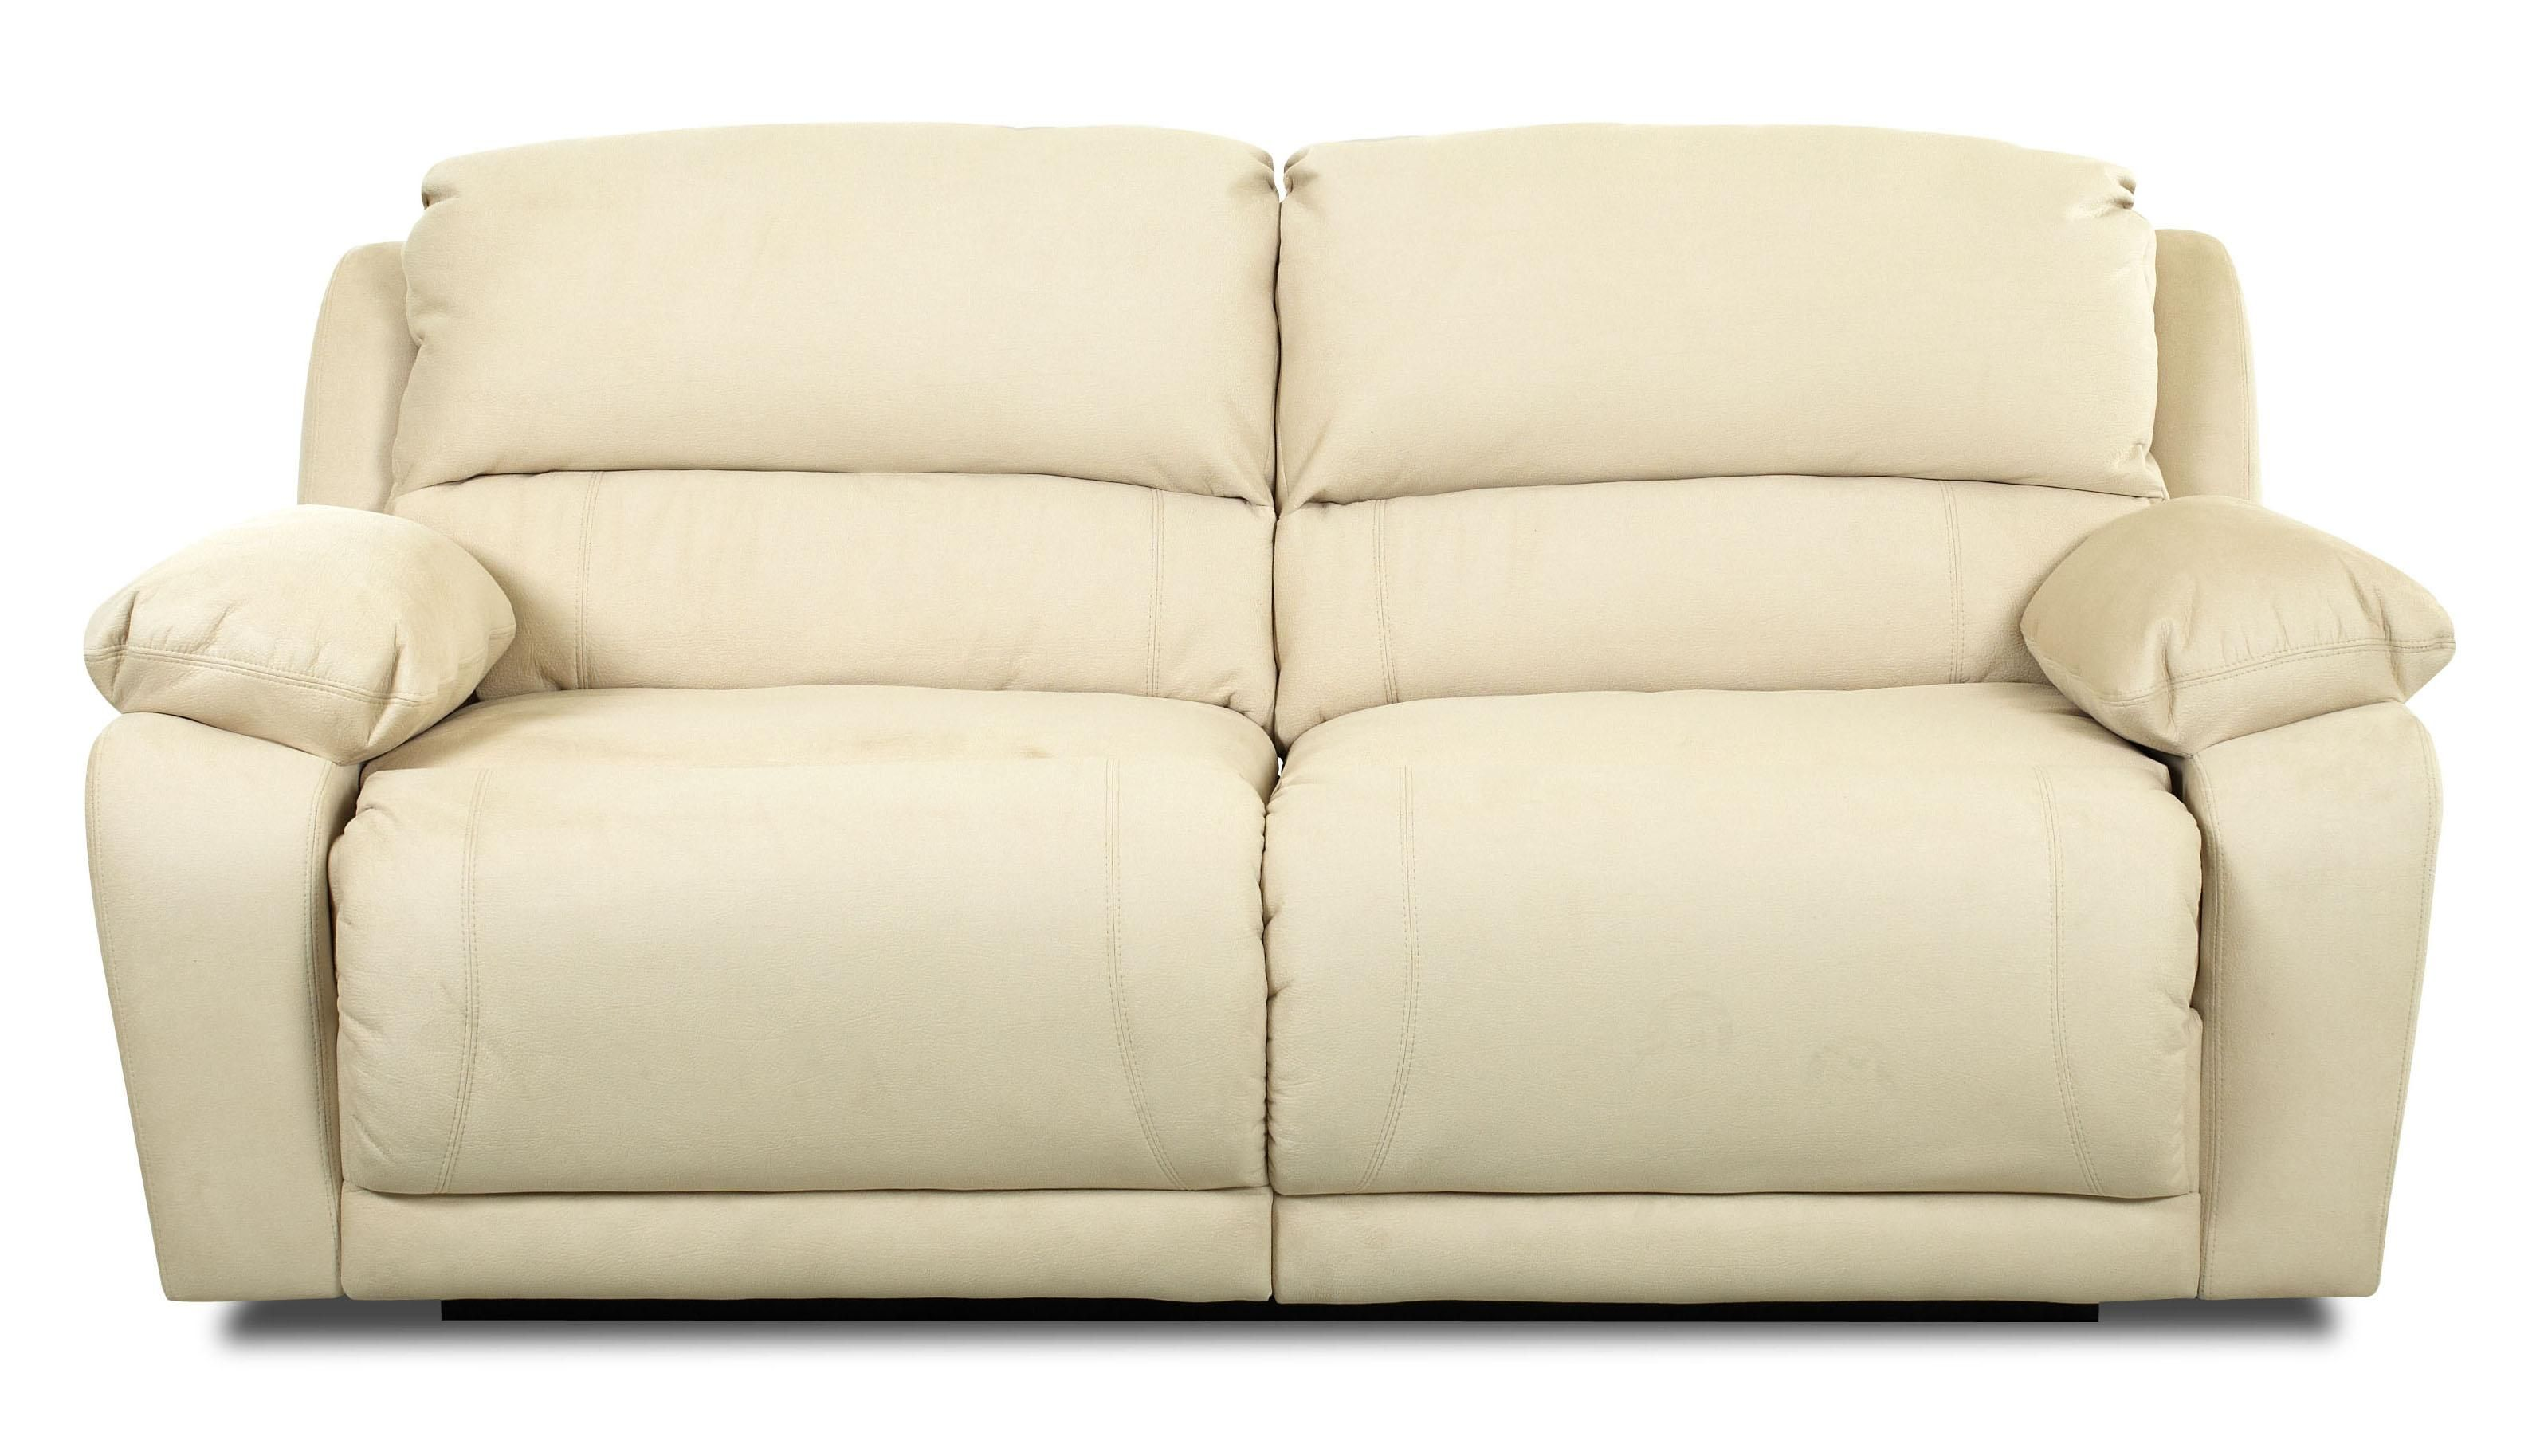 Charmed reclining sofa by klaussner ideas for the house